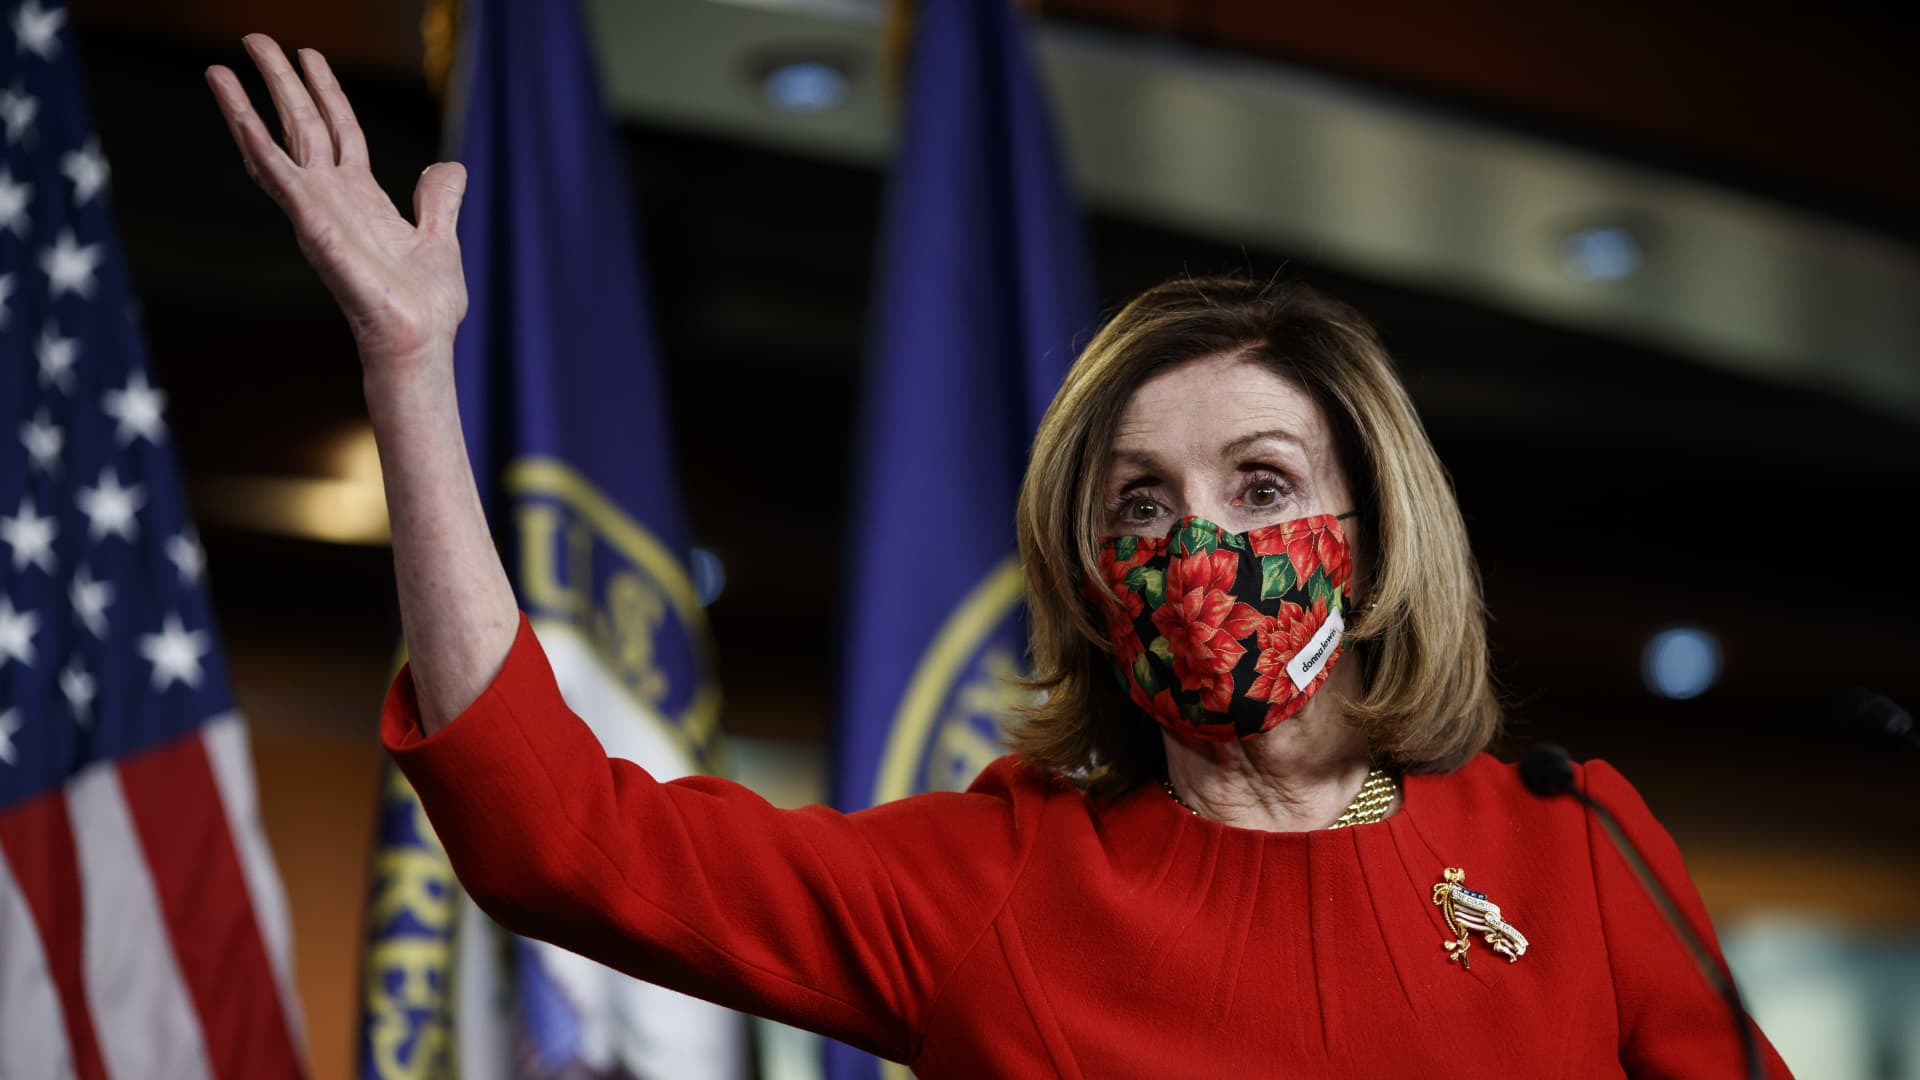 U.S. House Speaker Nancy Pelosi, a Democrat from California, wears a protective mask while speaking during a news conference at the U.S. Capitol Building in Washington, D.C., U.S., on Sunday, Dec. 20, 2020.